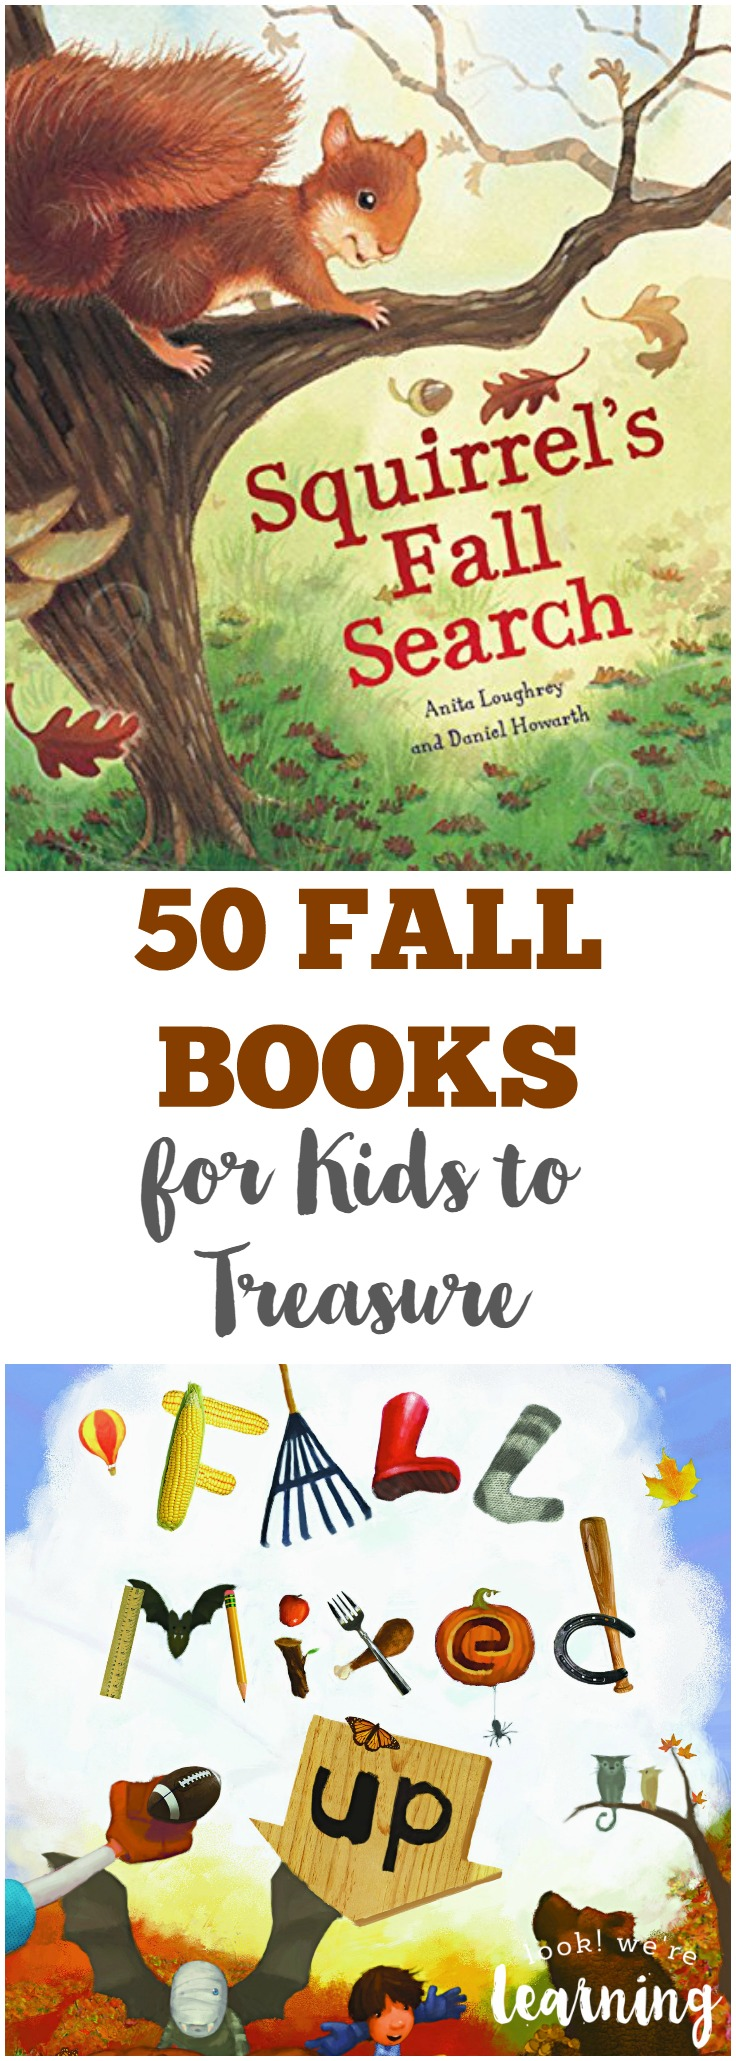 Fall Books for Kids to Treasure